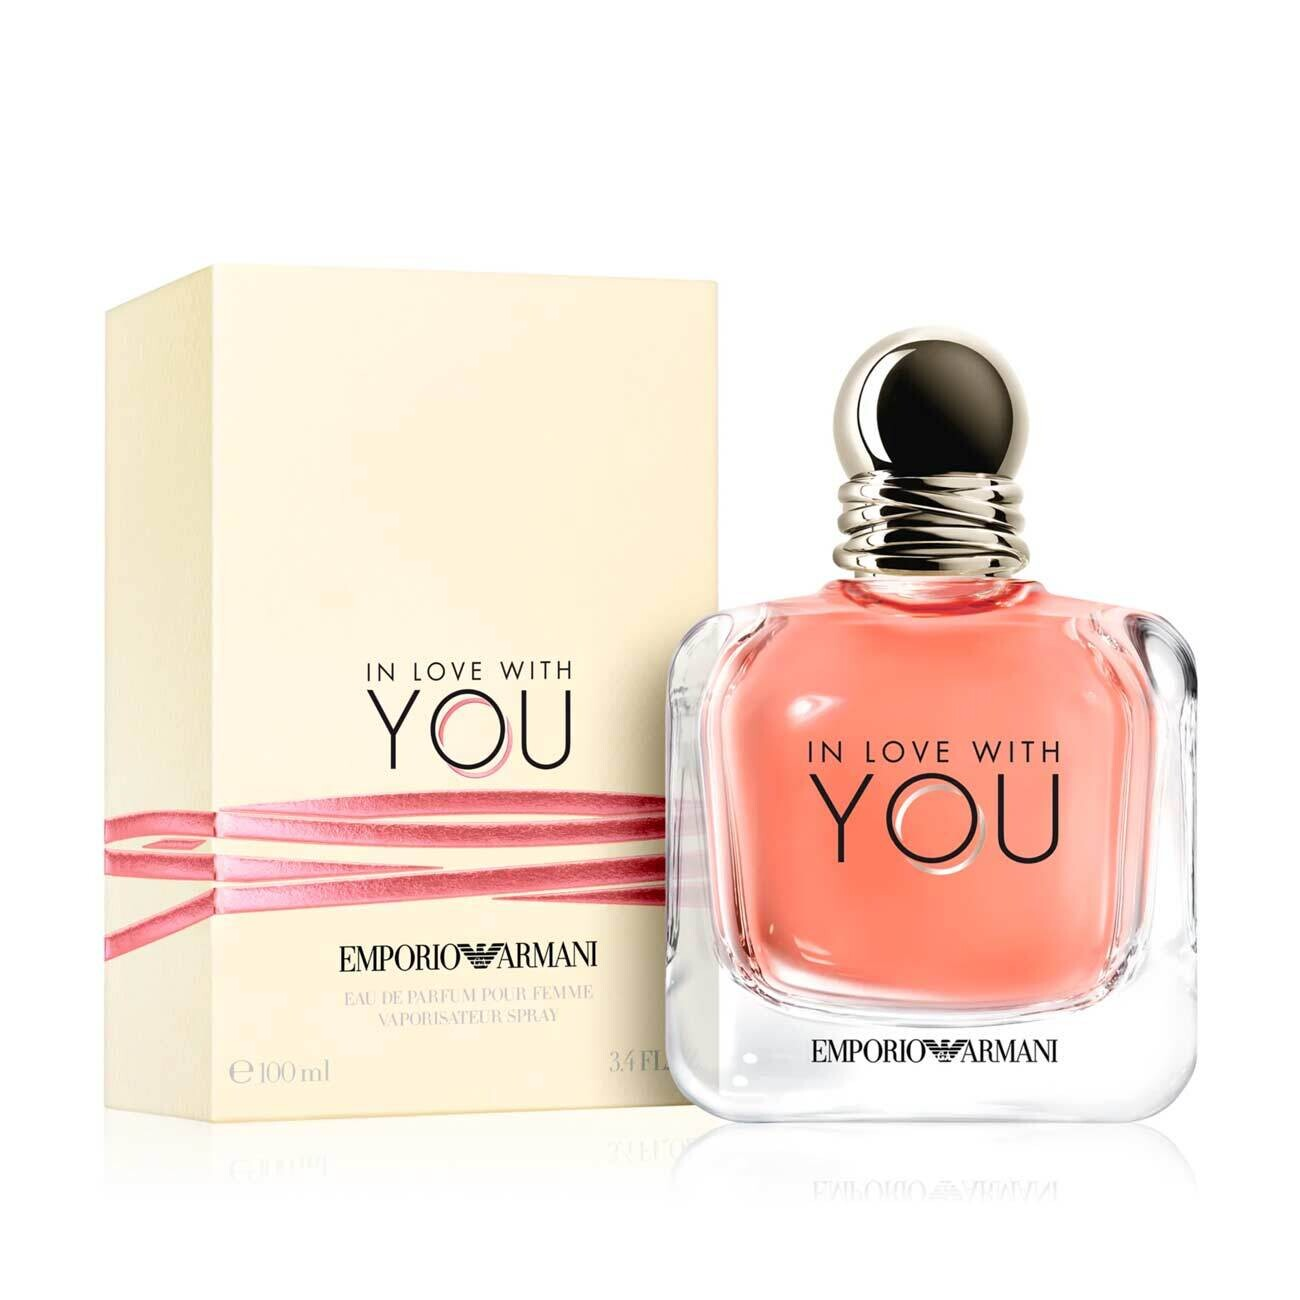 IN LOVE WITH YOU INTENSELY POUR FEMME EDP 50 ML